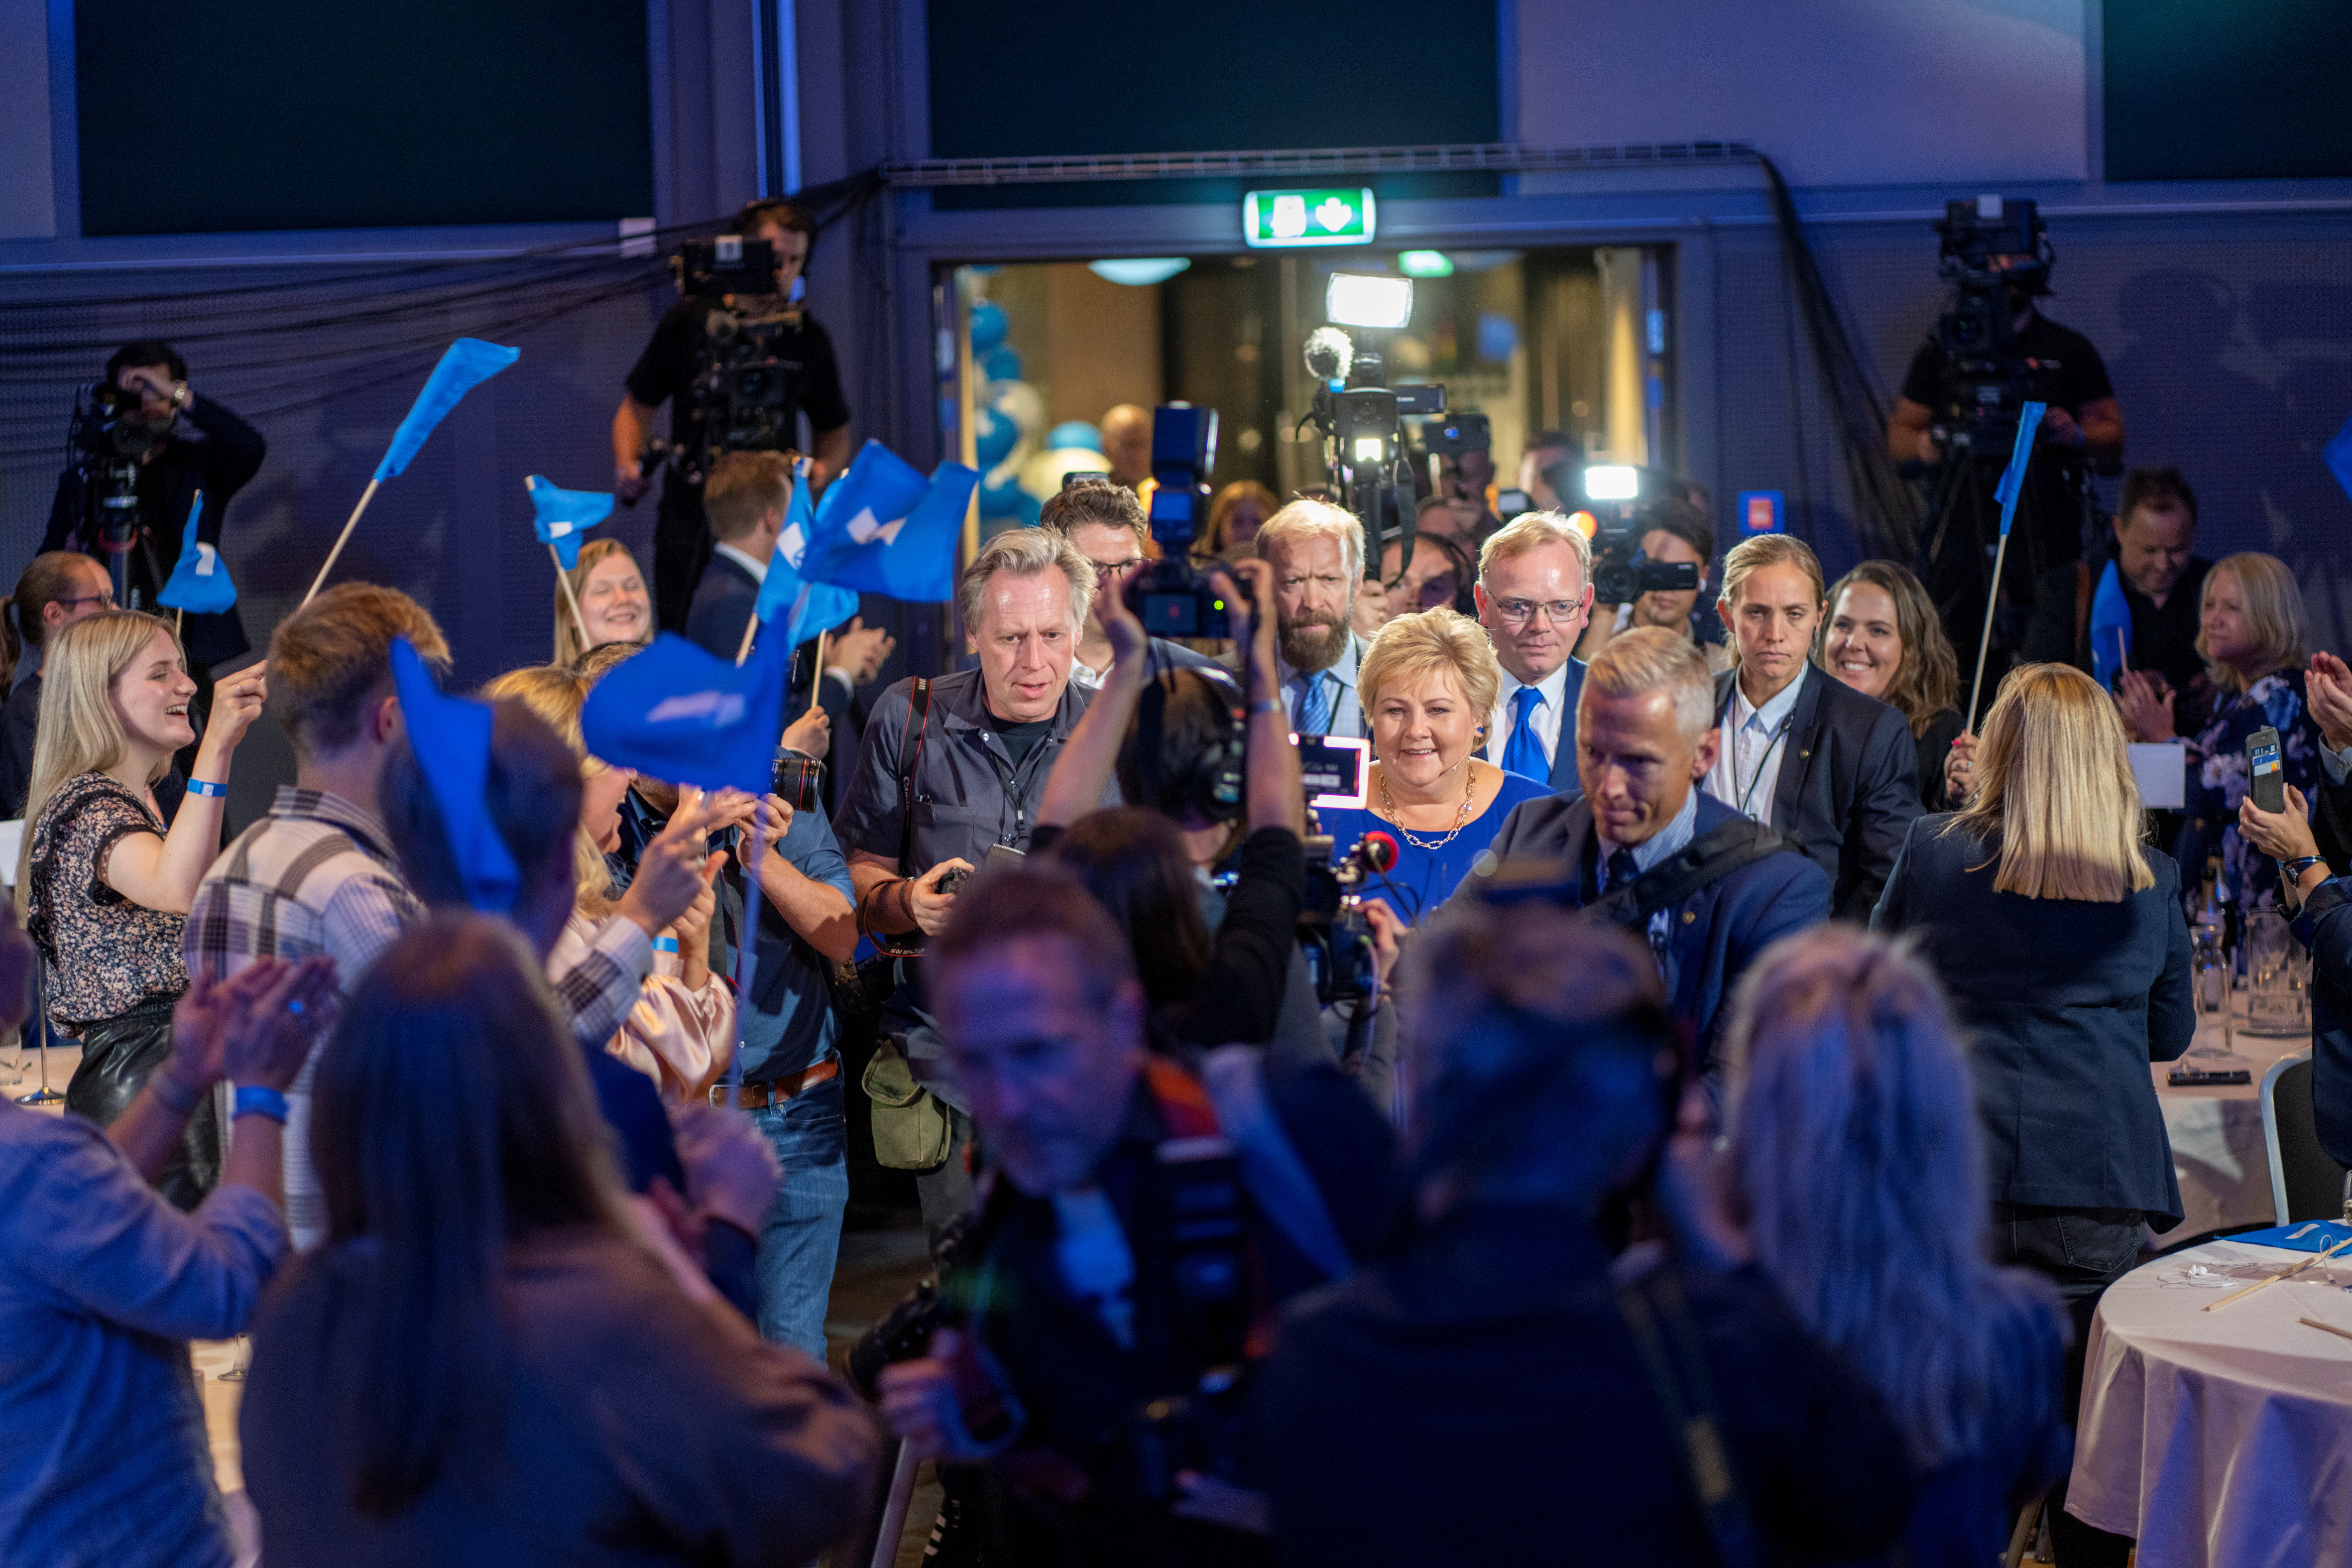 Norwegian Prime Minister Erna Solberg, leader of the Conservative Party, during the Conservative Party's election vigil at Radisson Blu Scandinavia Hotel during parliamentary elections, in Oslo, Norway September 13, 2021. Heiko Junge/NTB via REUTERS